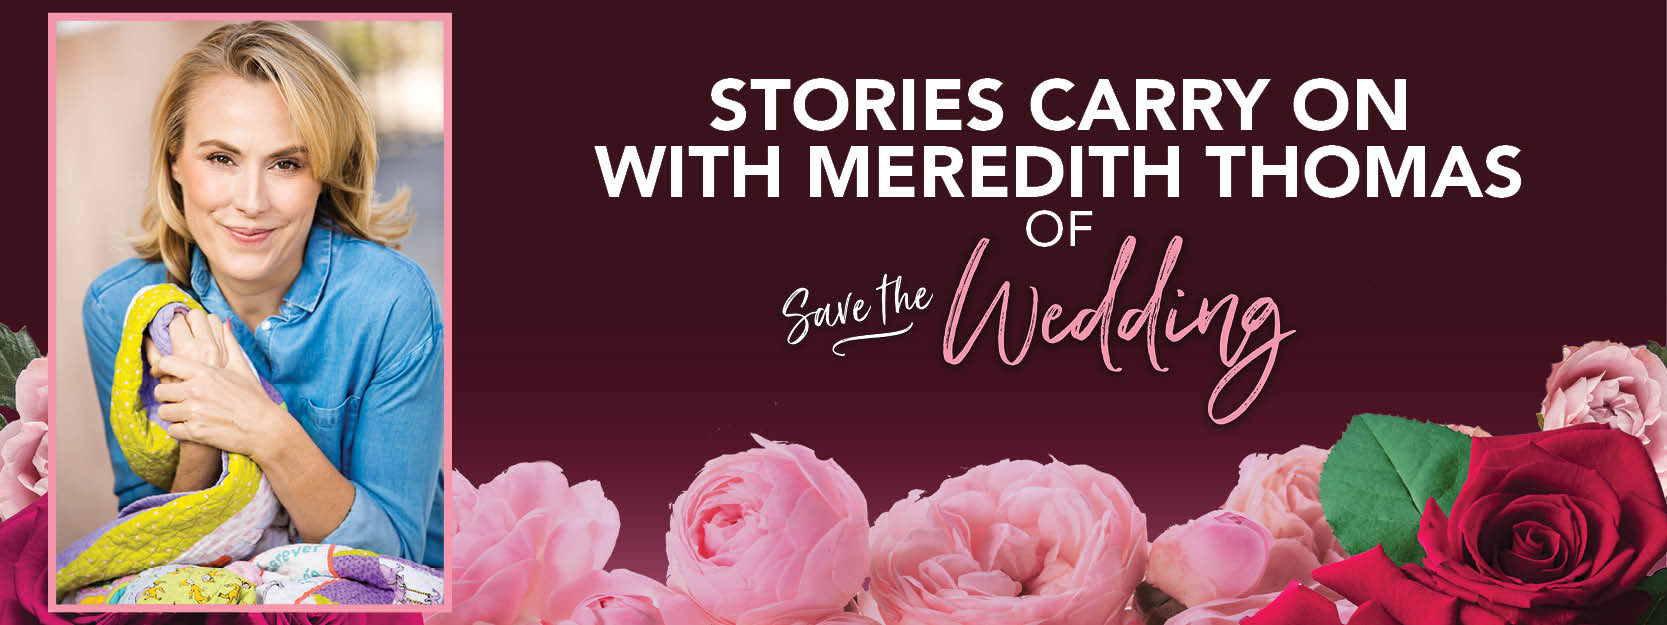 Stories Carry On with Meredith Thomas